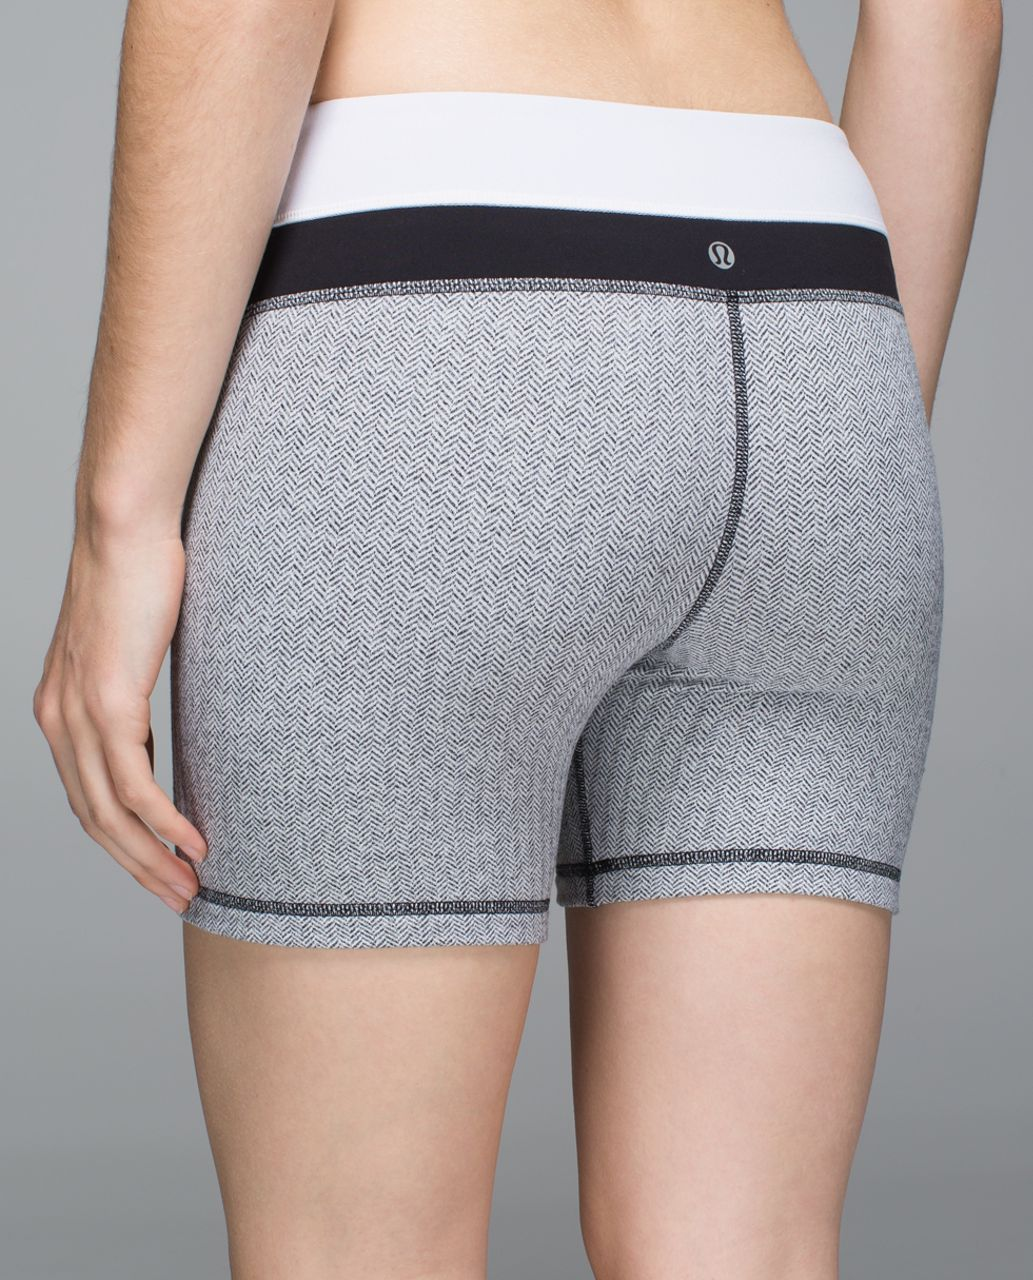 Lululemon Groove Short (Regular) - Heathered Herringbone Heathered Black White / Black / White